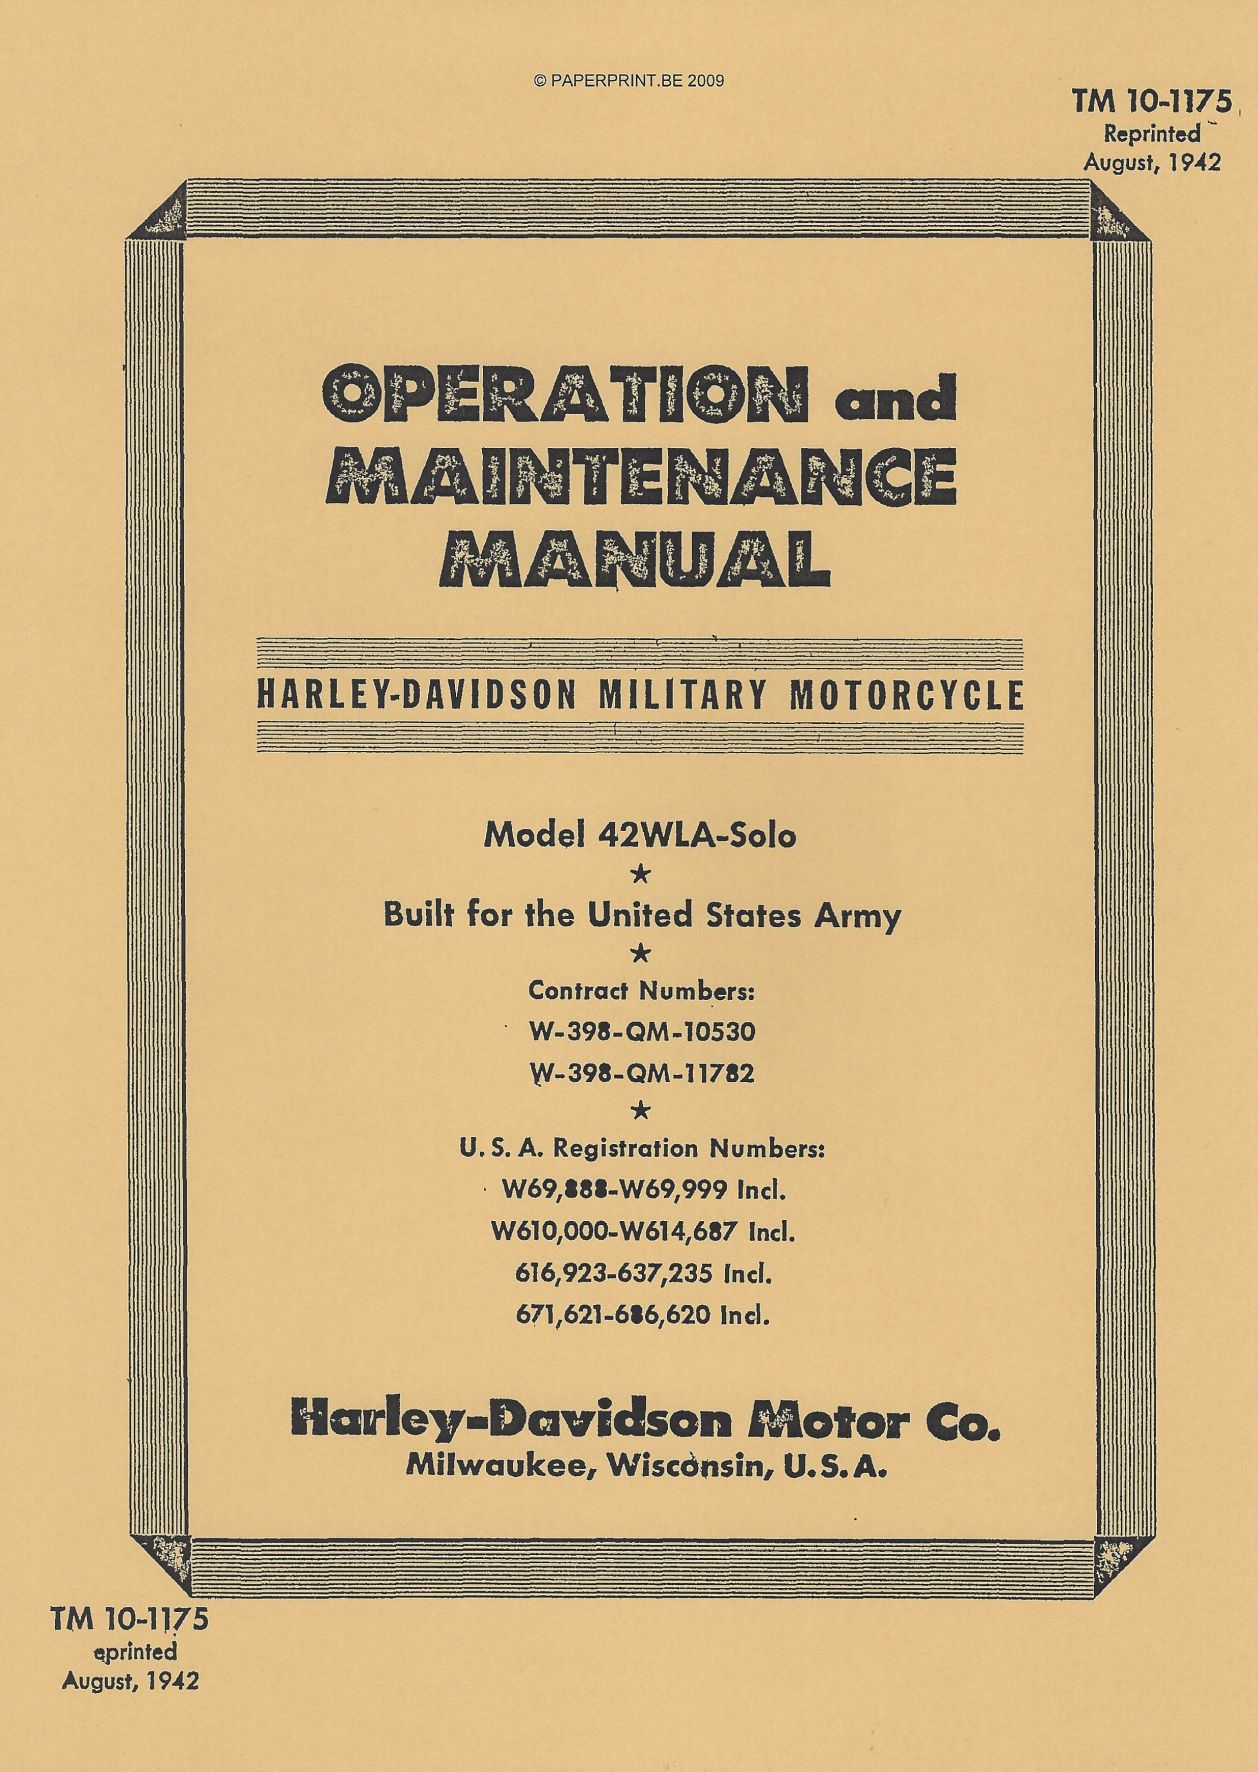 TM 10-1175 US OPERATION AND MAINTENANCE MANUAL HARLEY-DAVIDSON MILITARY MOTORCYCLE  MODEL 42WLA-SOLO